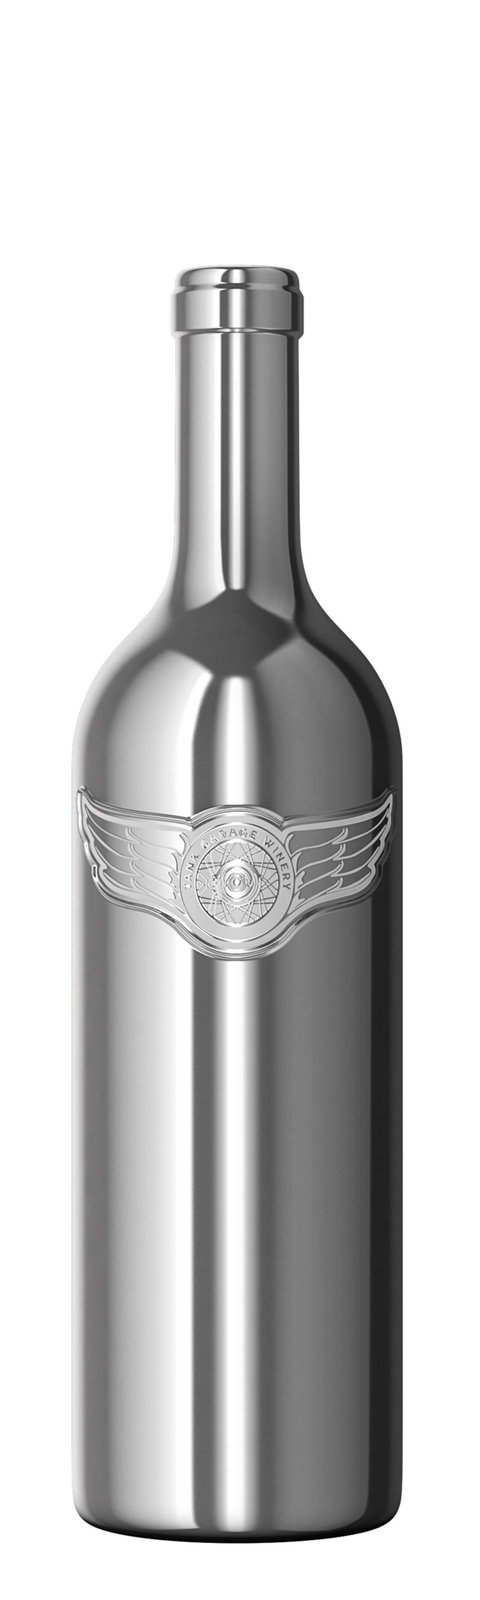 Tank Garage Winery releases 2015 Chrome Dreams in first ever chrome-glass wine bottle - What's Shakin' week of September 4